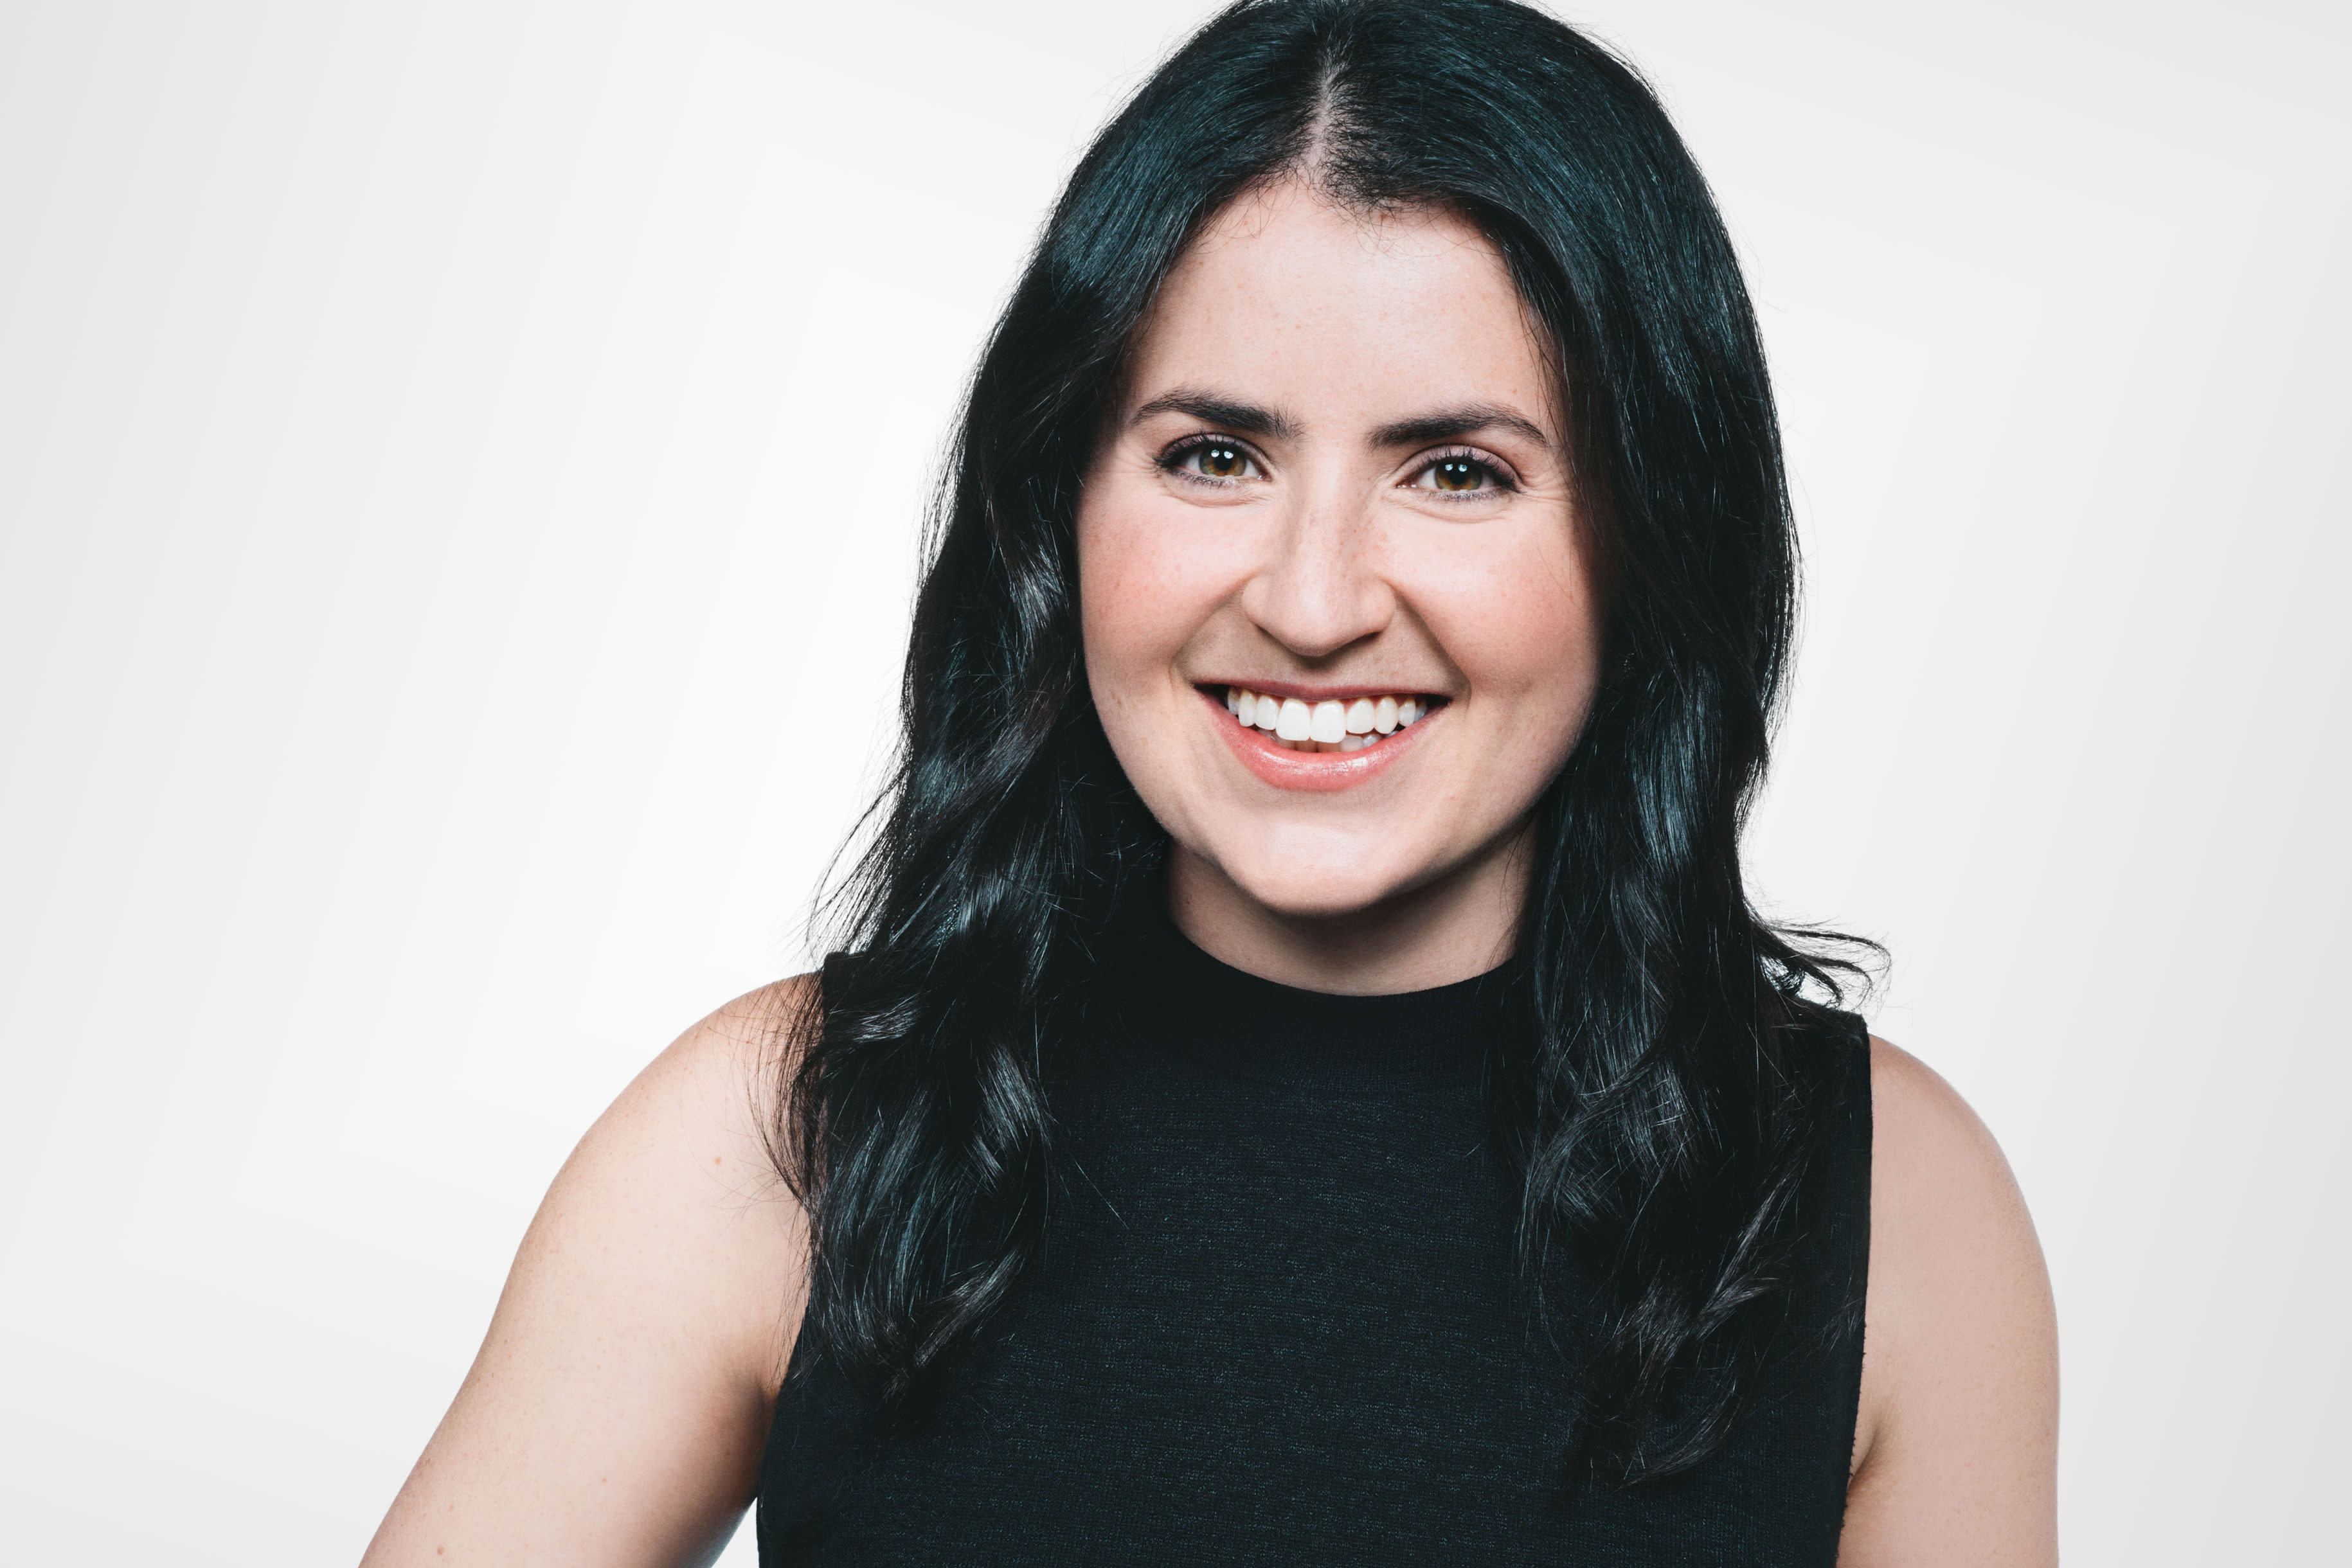 Meet Morgan Beller, the 26-year-old woman behind Facebook's plan to make its own currency